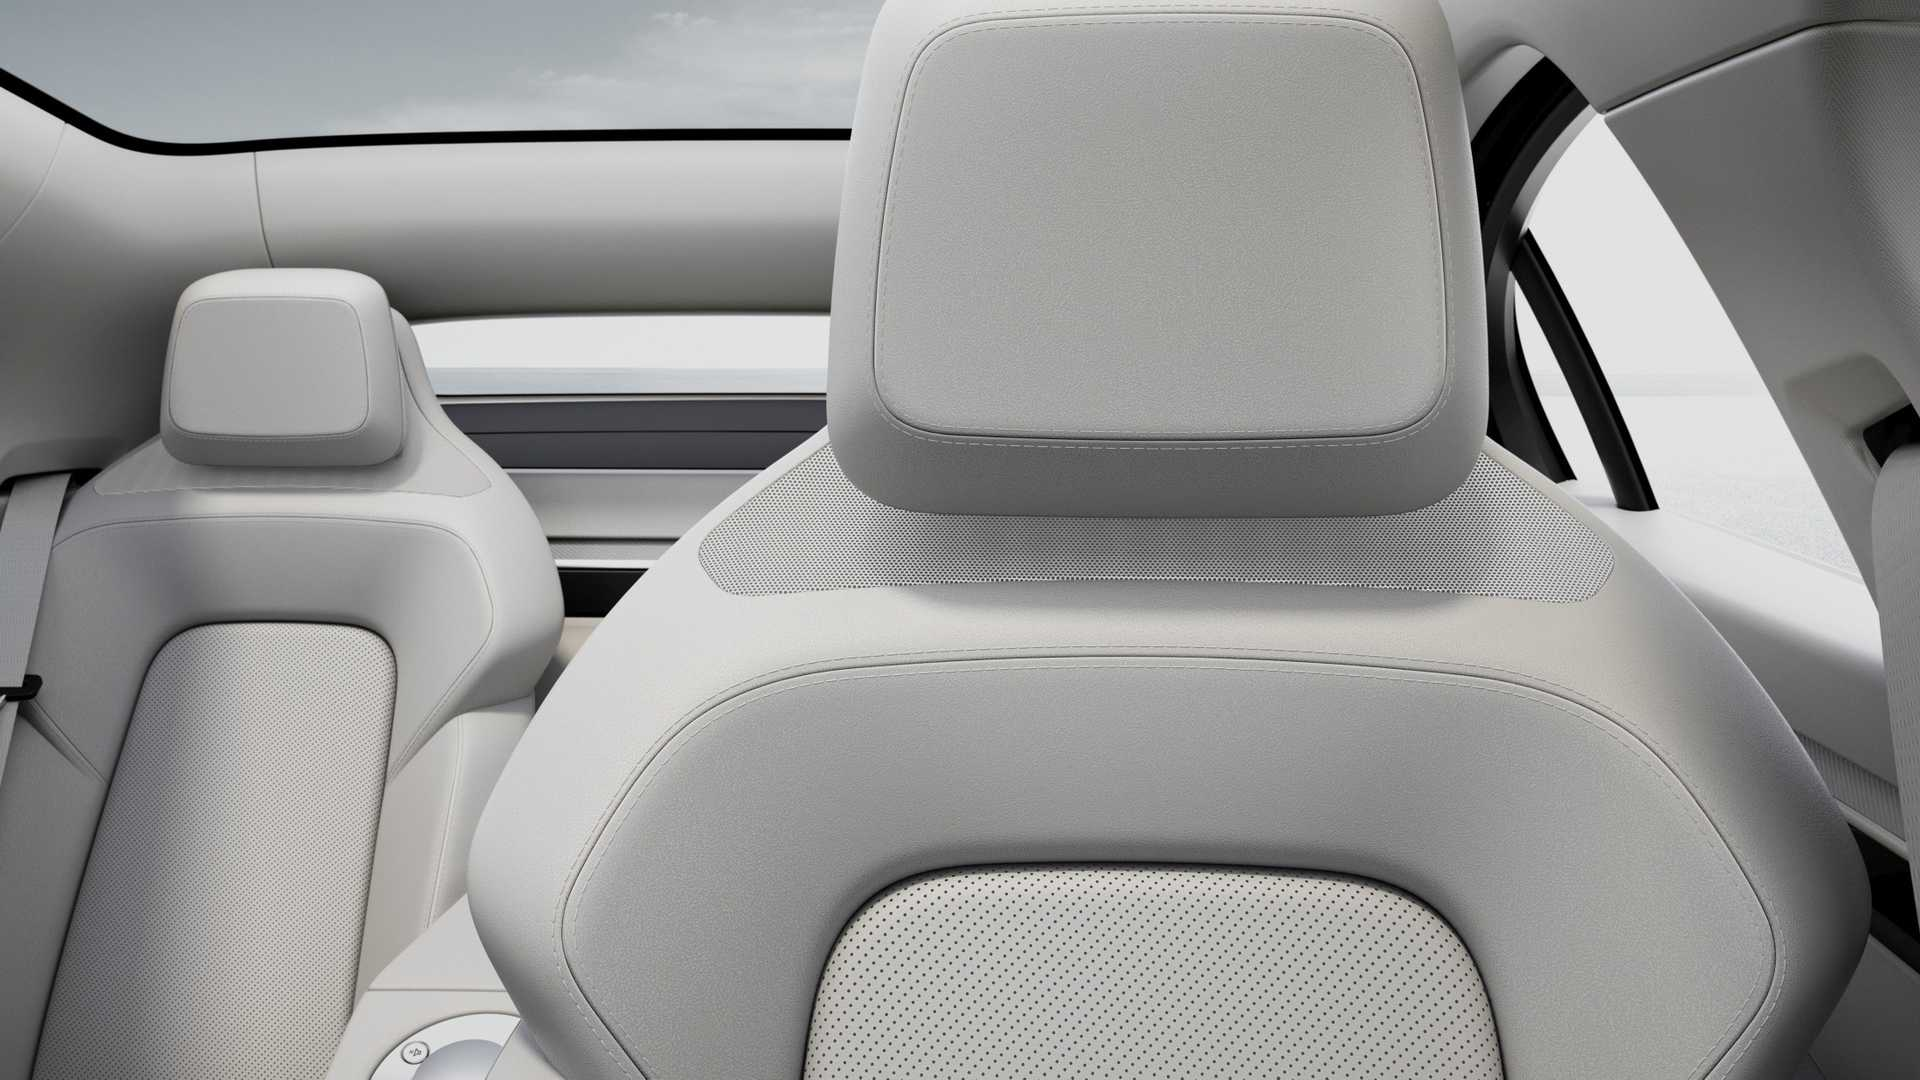 Sony Vision-S Seats